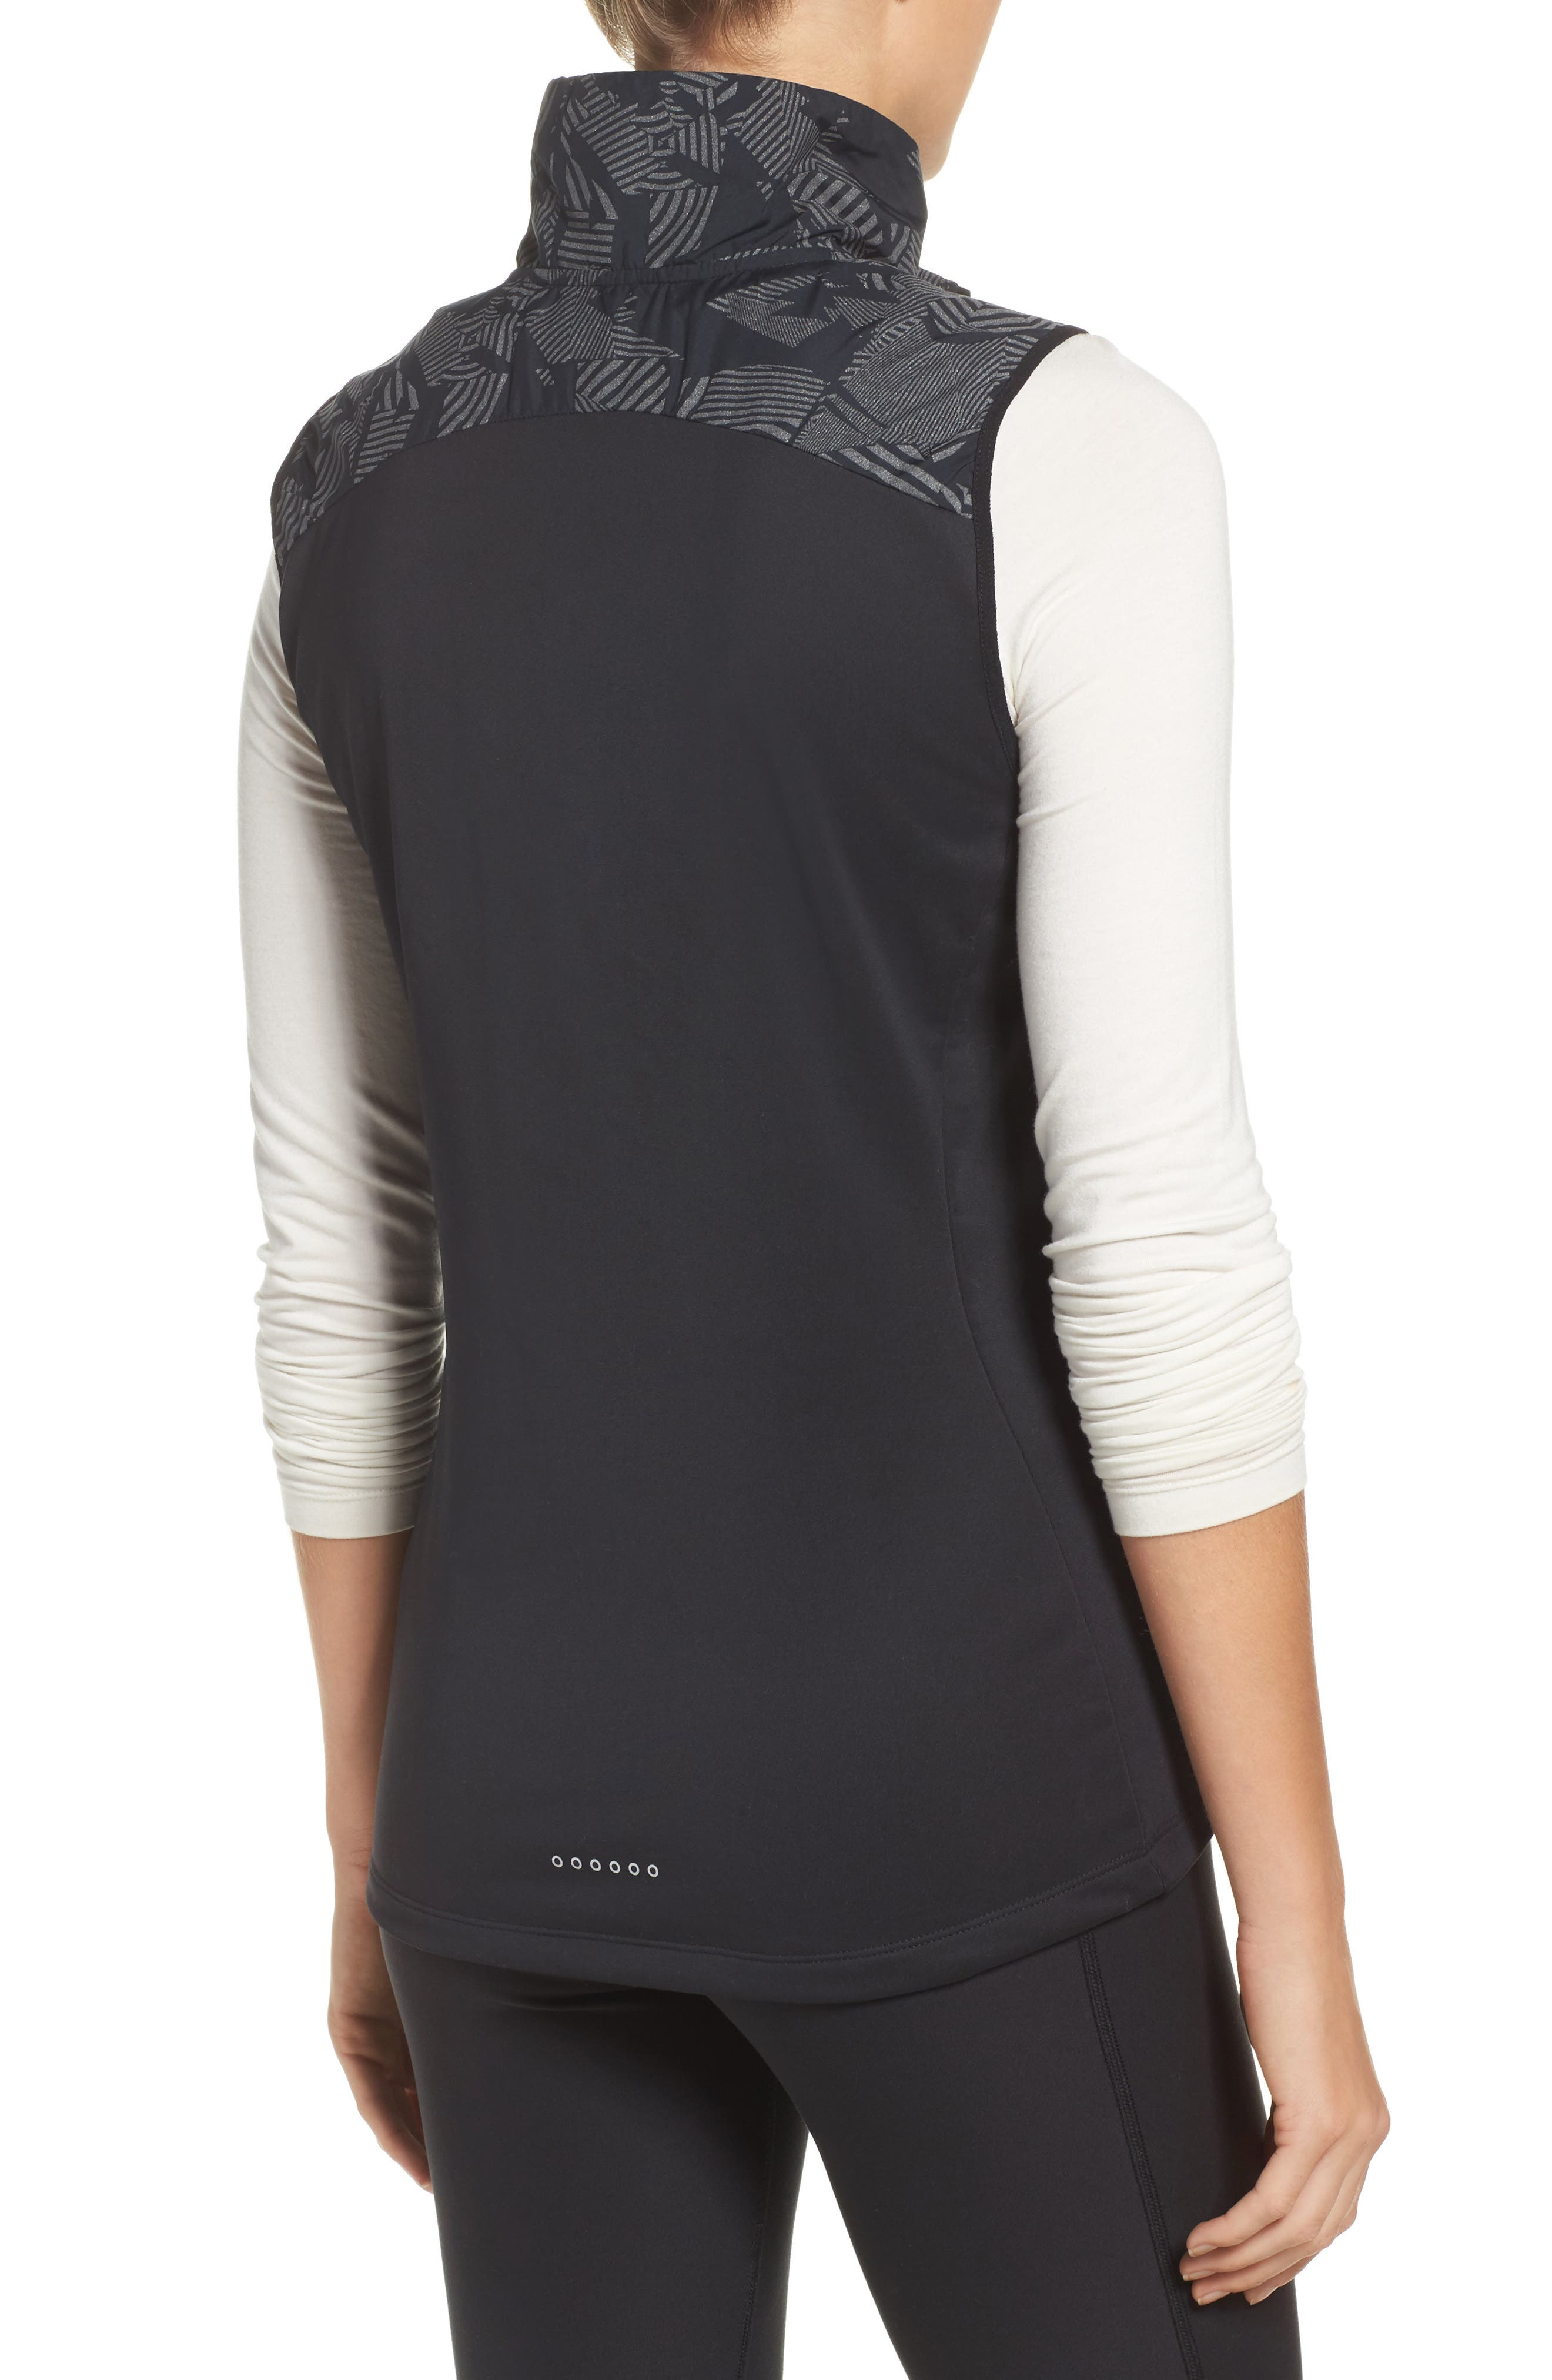 Essential Flash Running Vest,                             Alternate thumbnail 2, color,